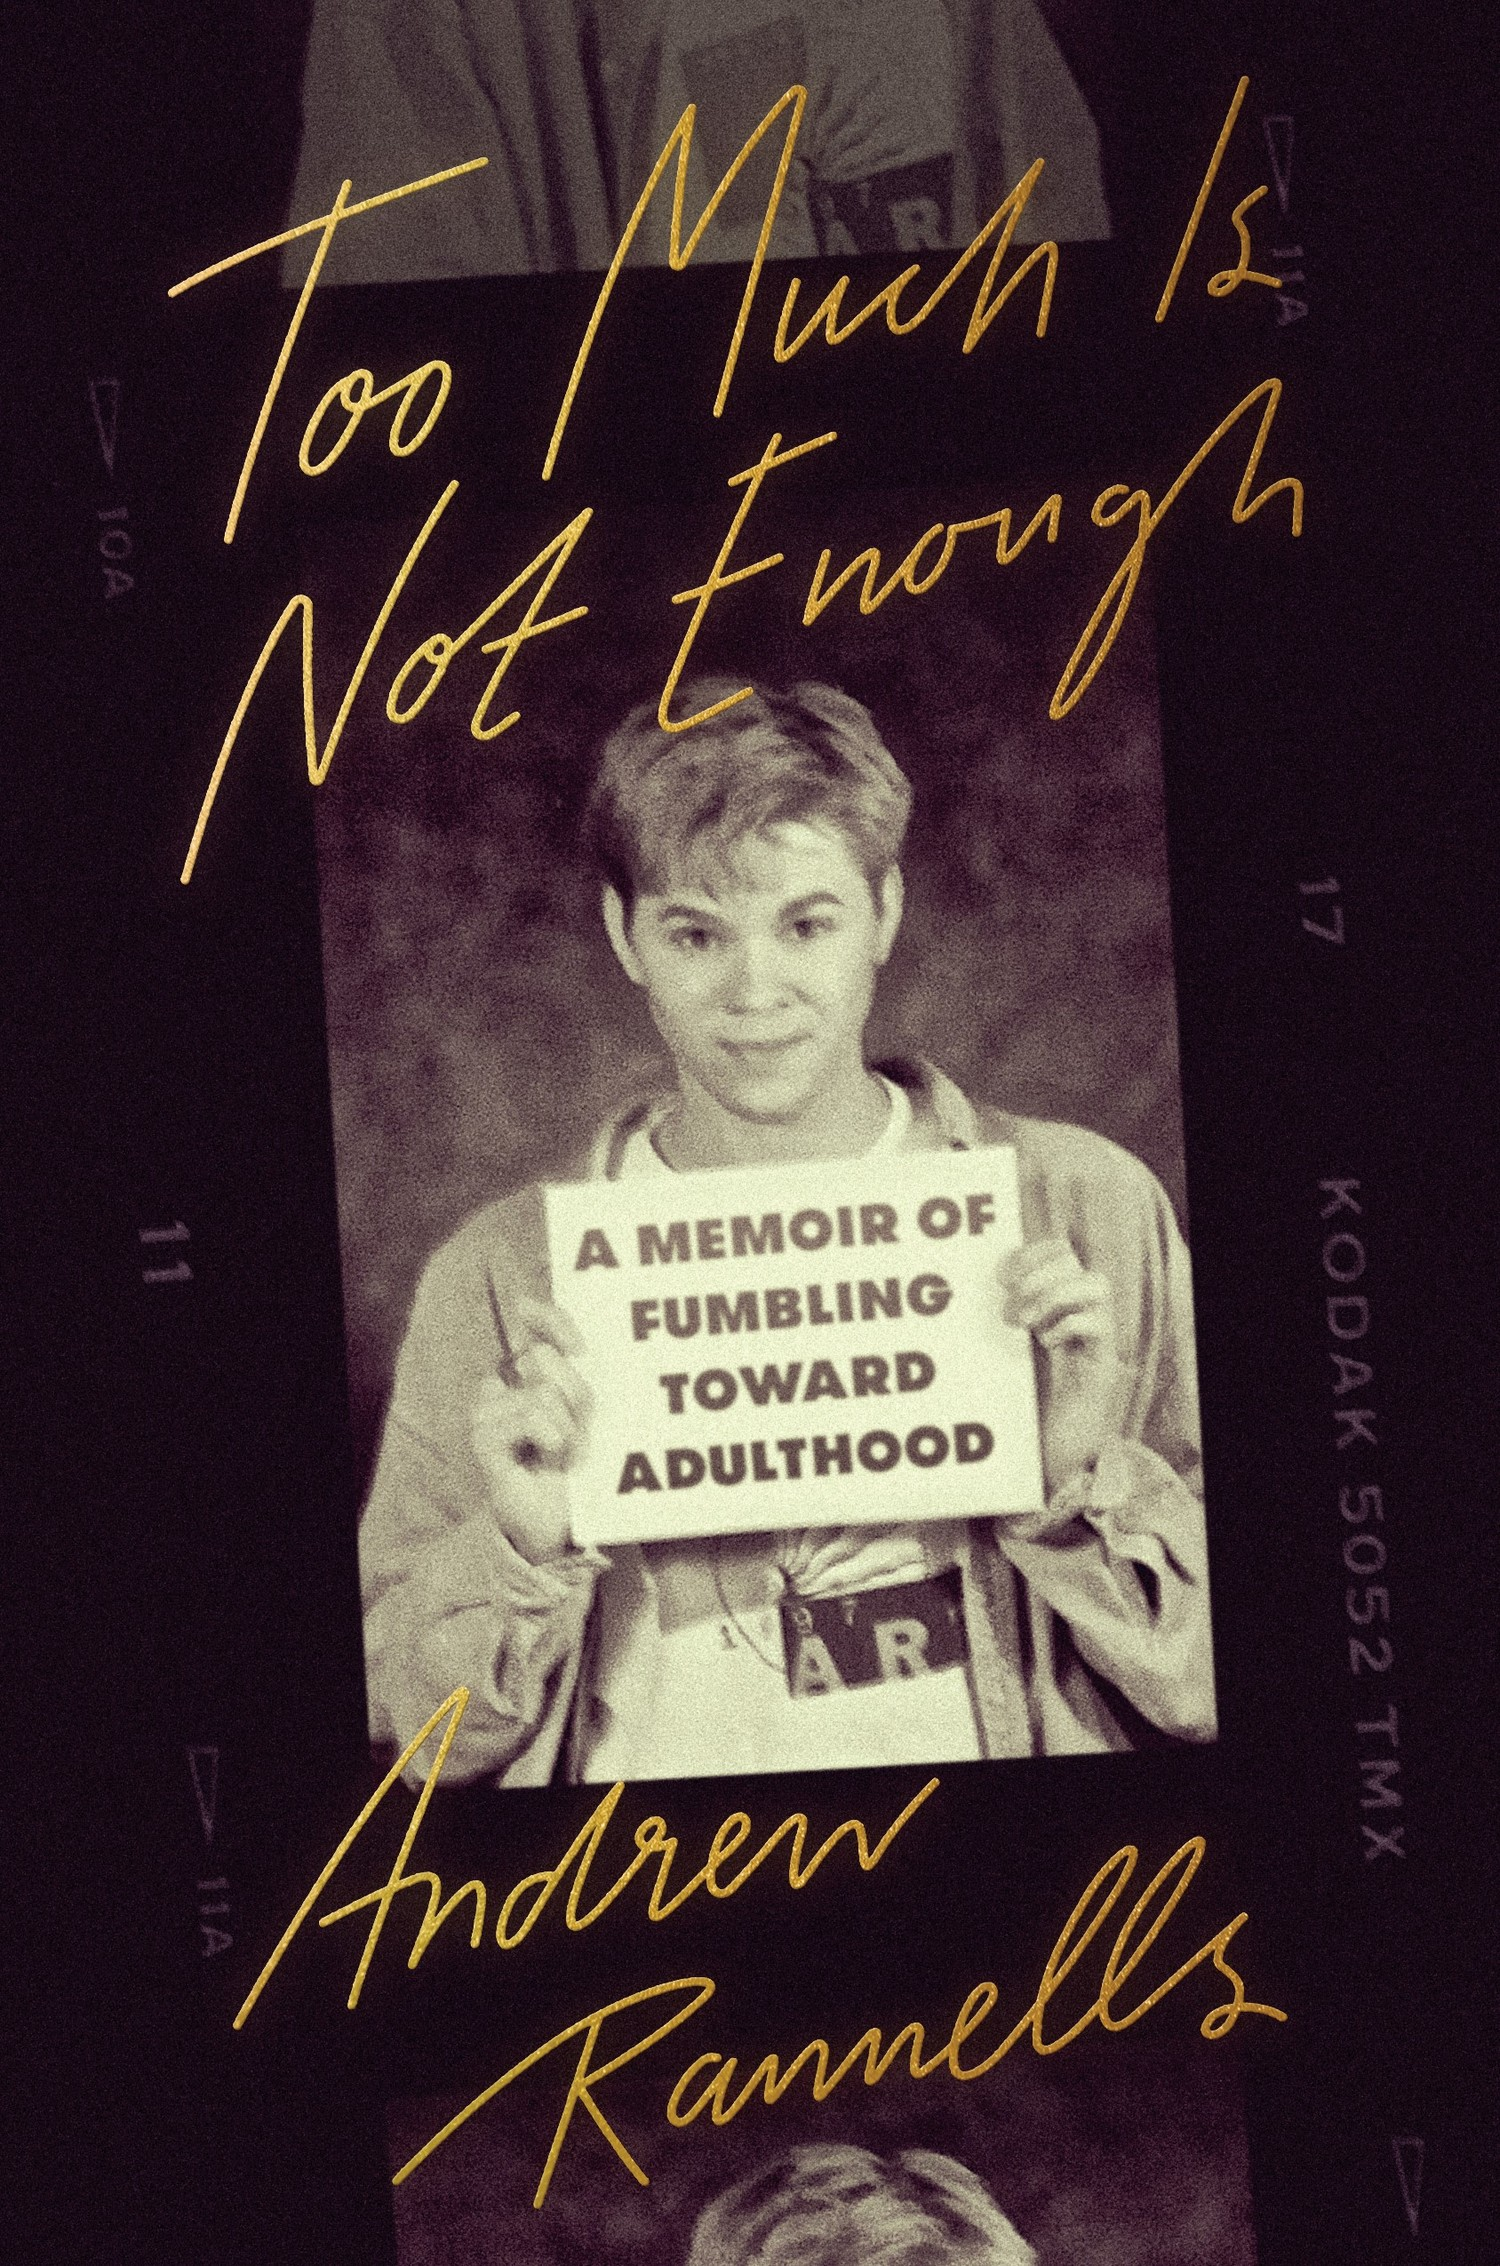 BWW Review: TOO MUCH IS NOT ENOUGH by Andrew Rannells Takes You Intimately Inside His Life for an Unexpected Journey